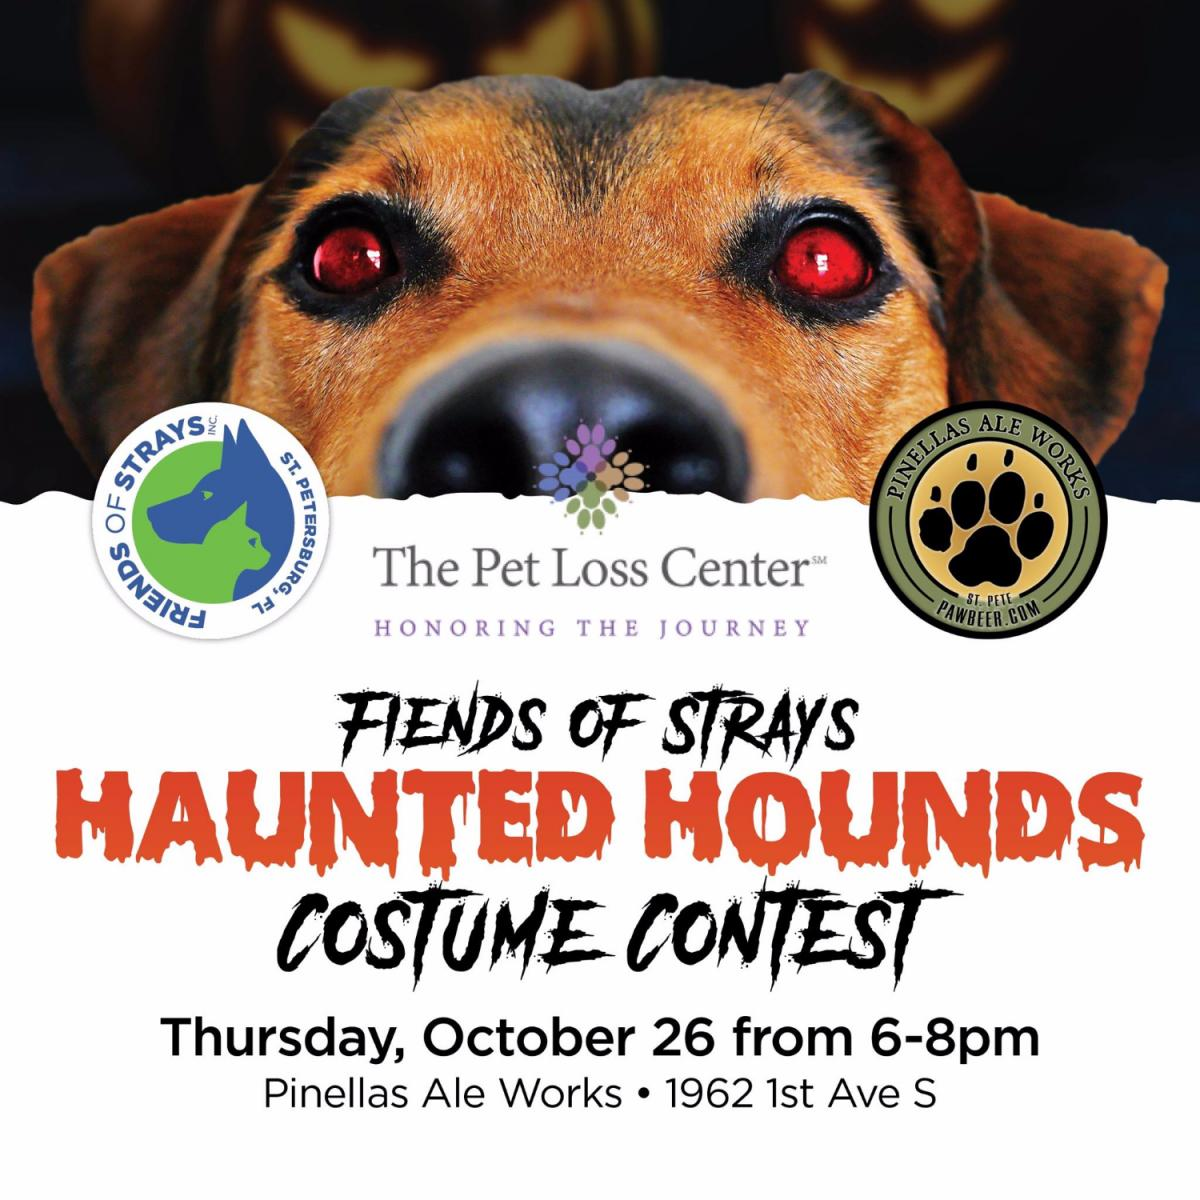 Fiends of Strays Haunted Hounds Costume Contest